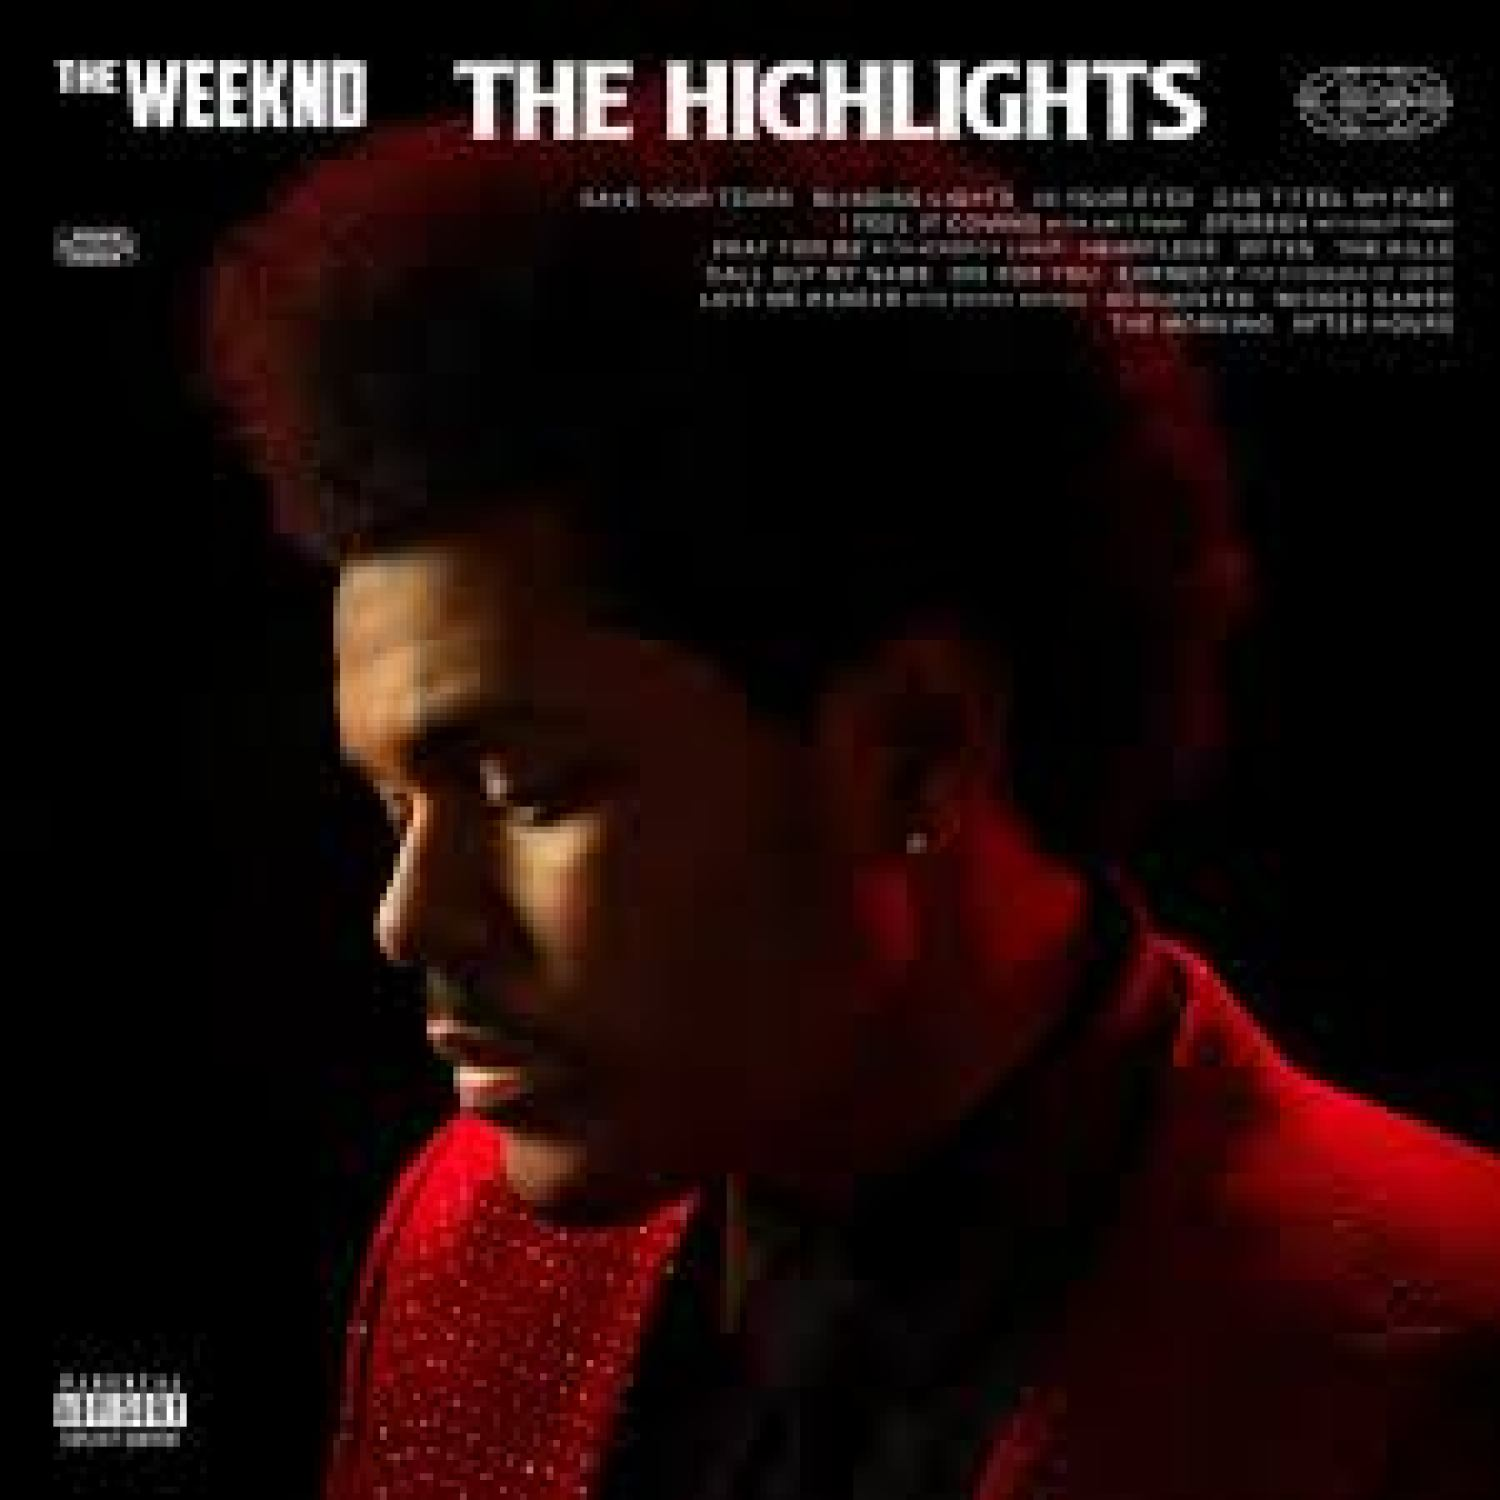 MP3: The Weeknd – Pray For Me MP3 Download AUDIO 320kbps